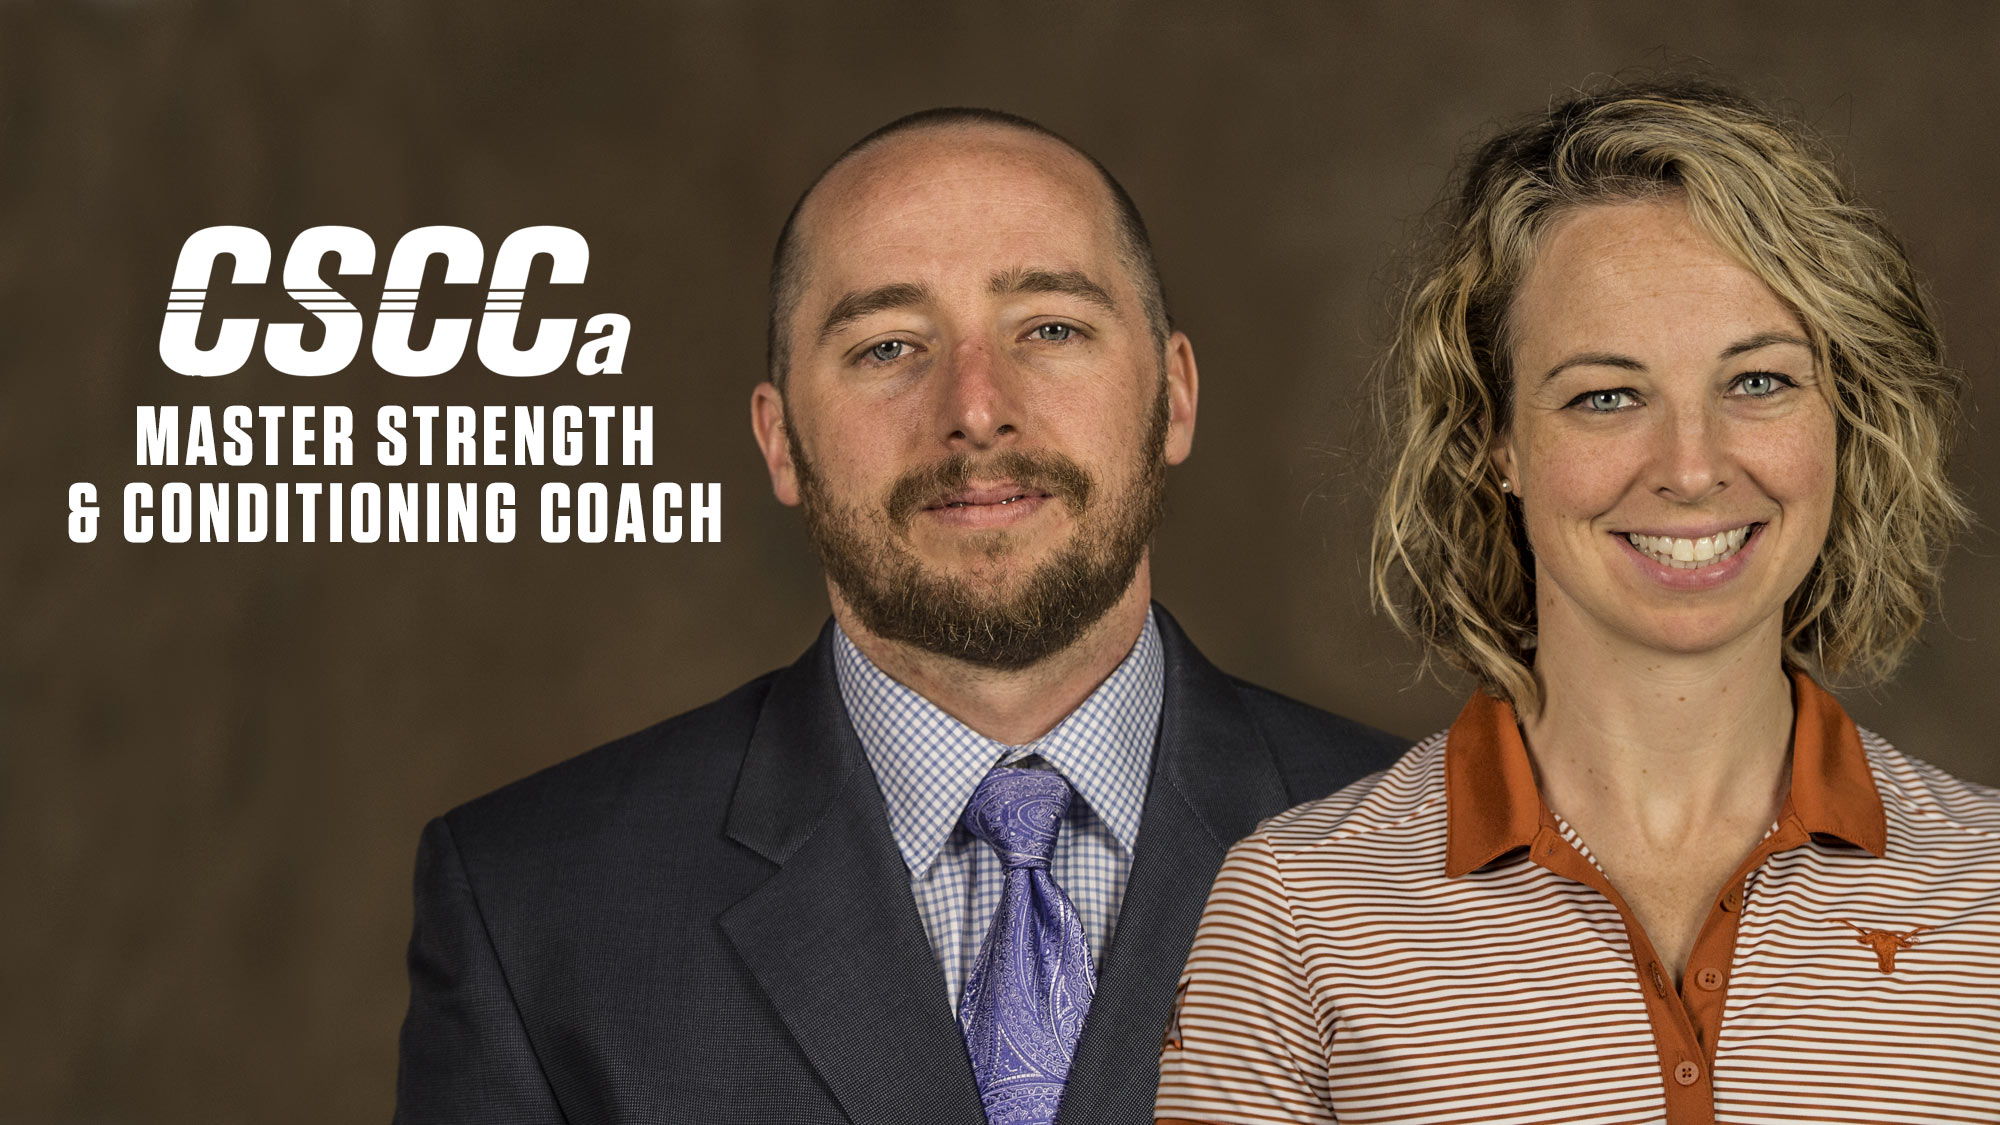 Byron, Roose named Master Strength and Conditioning Coaches